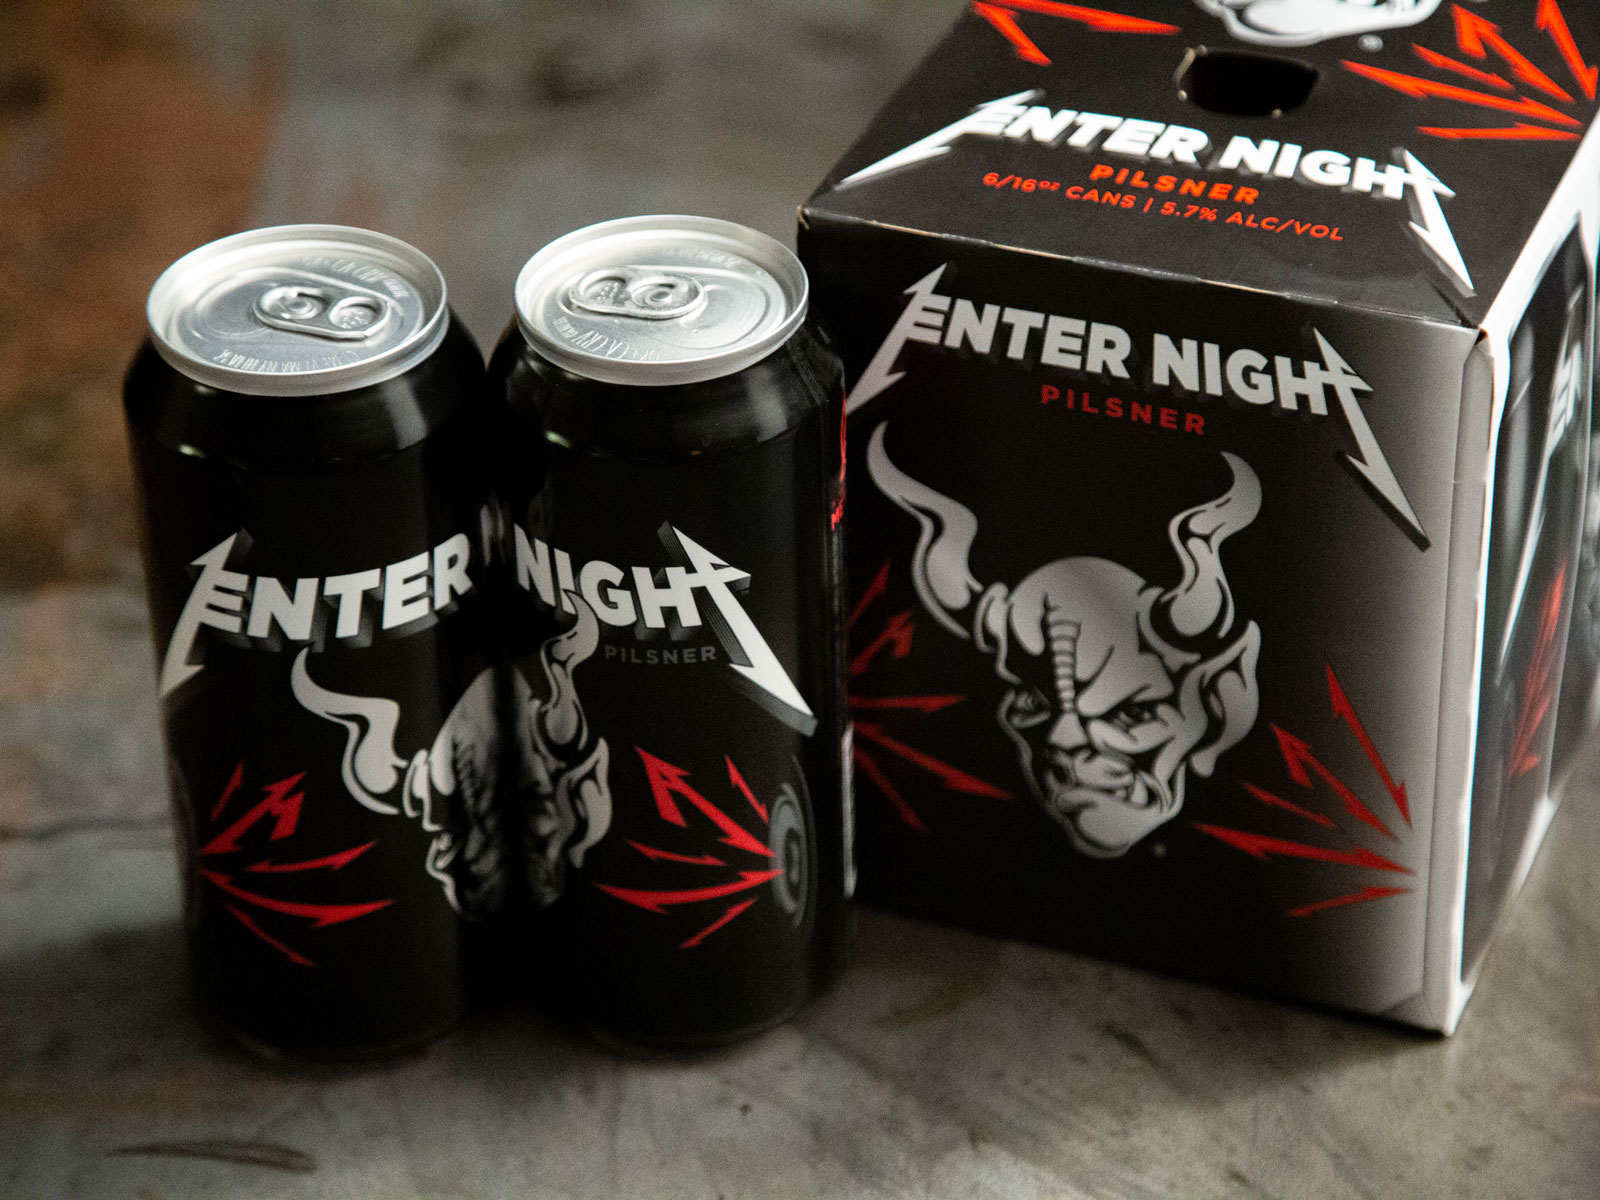 Metallica and Stone Brewing Add Another Beer to the Band's Beverage Empire